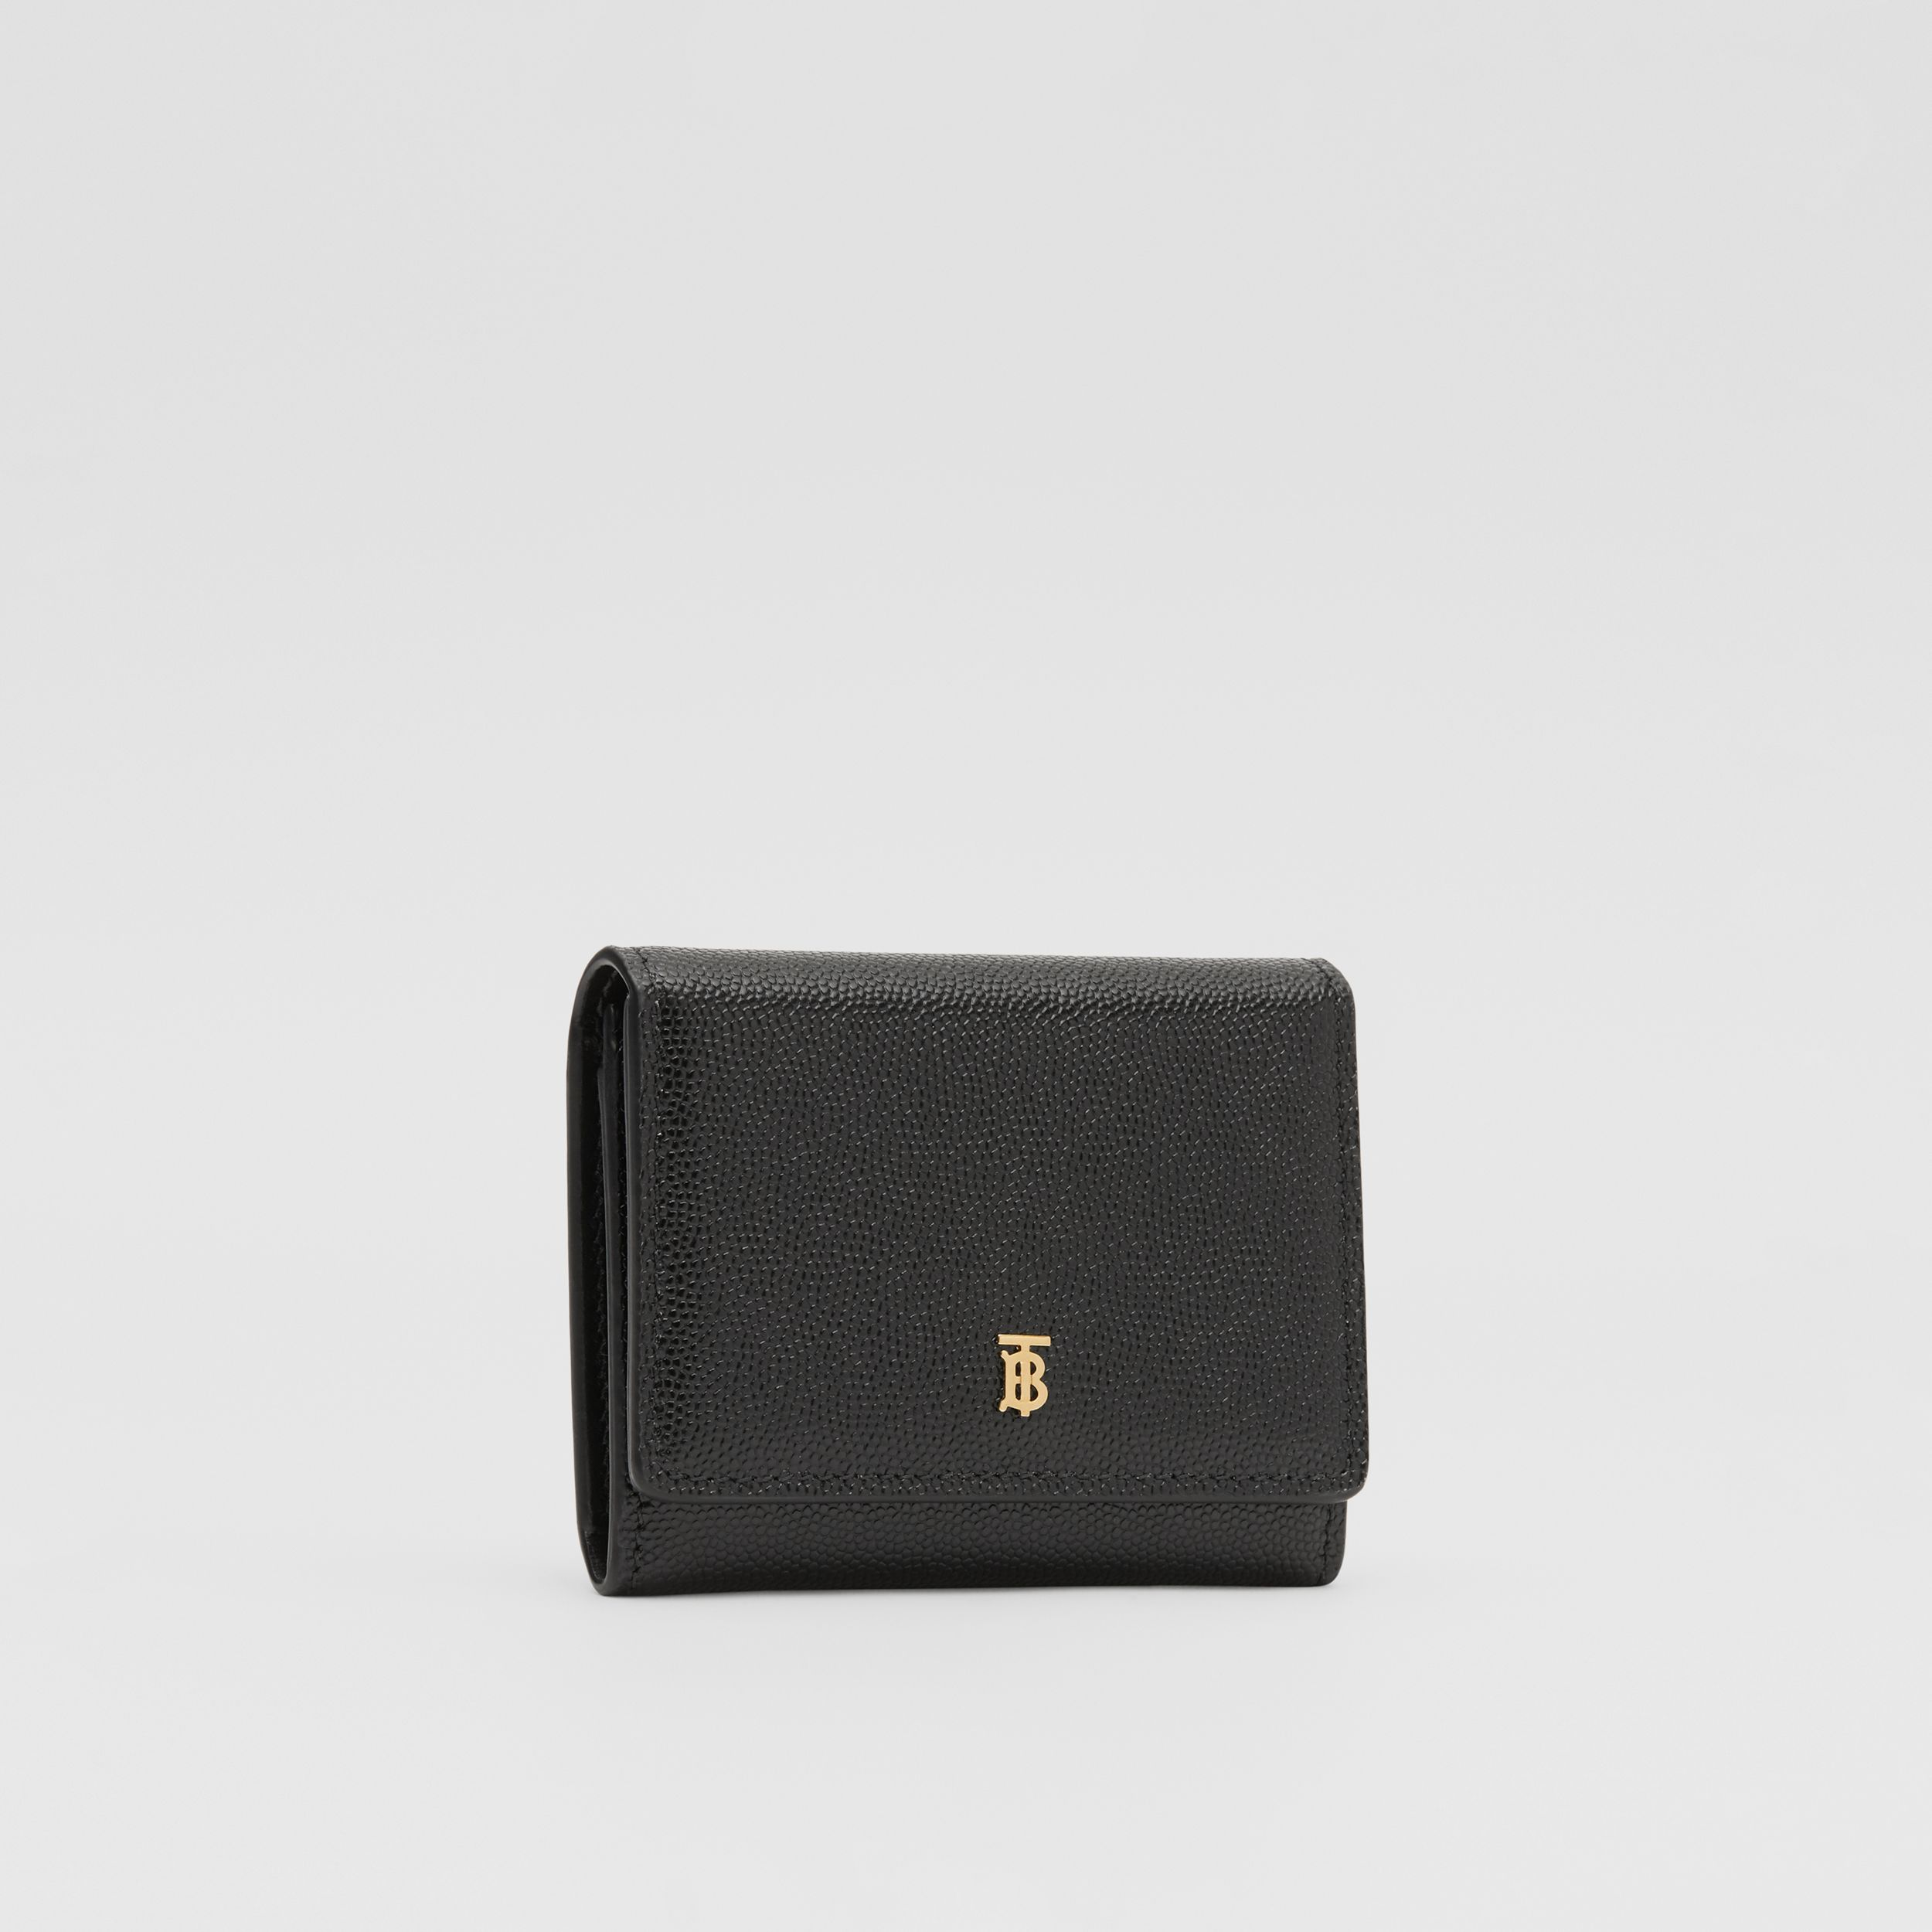 Grainy Leather ID Card Case in Black - Women | Burberry - 4